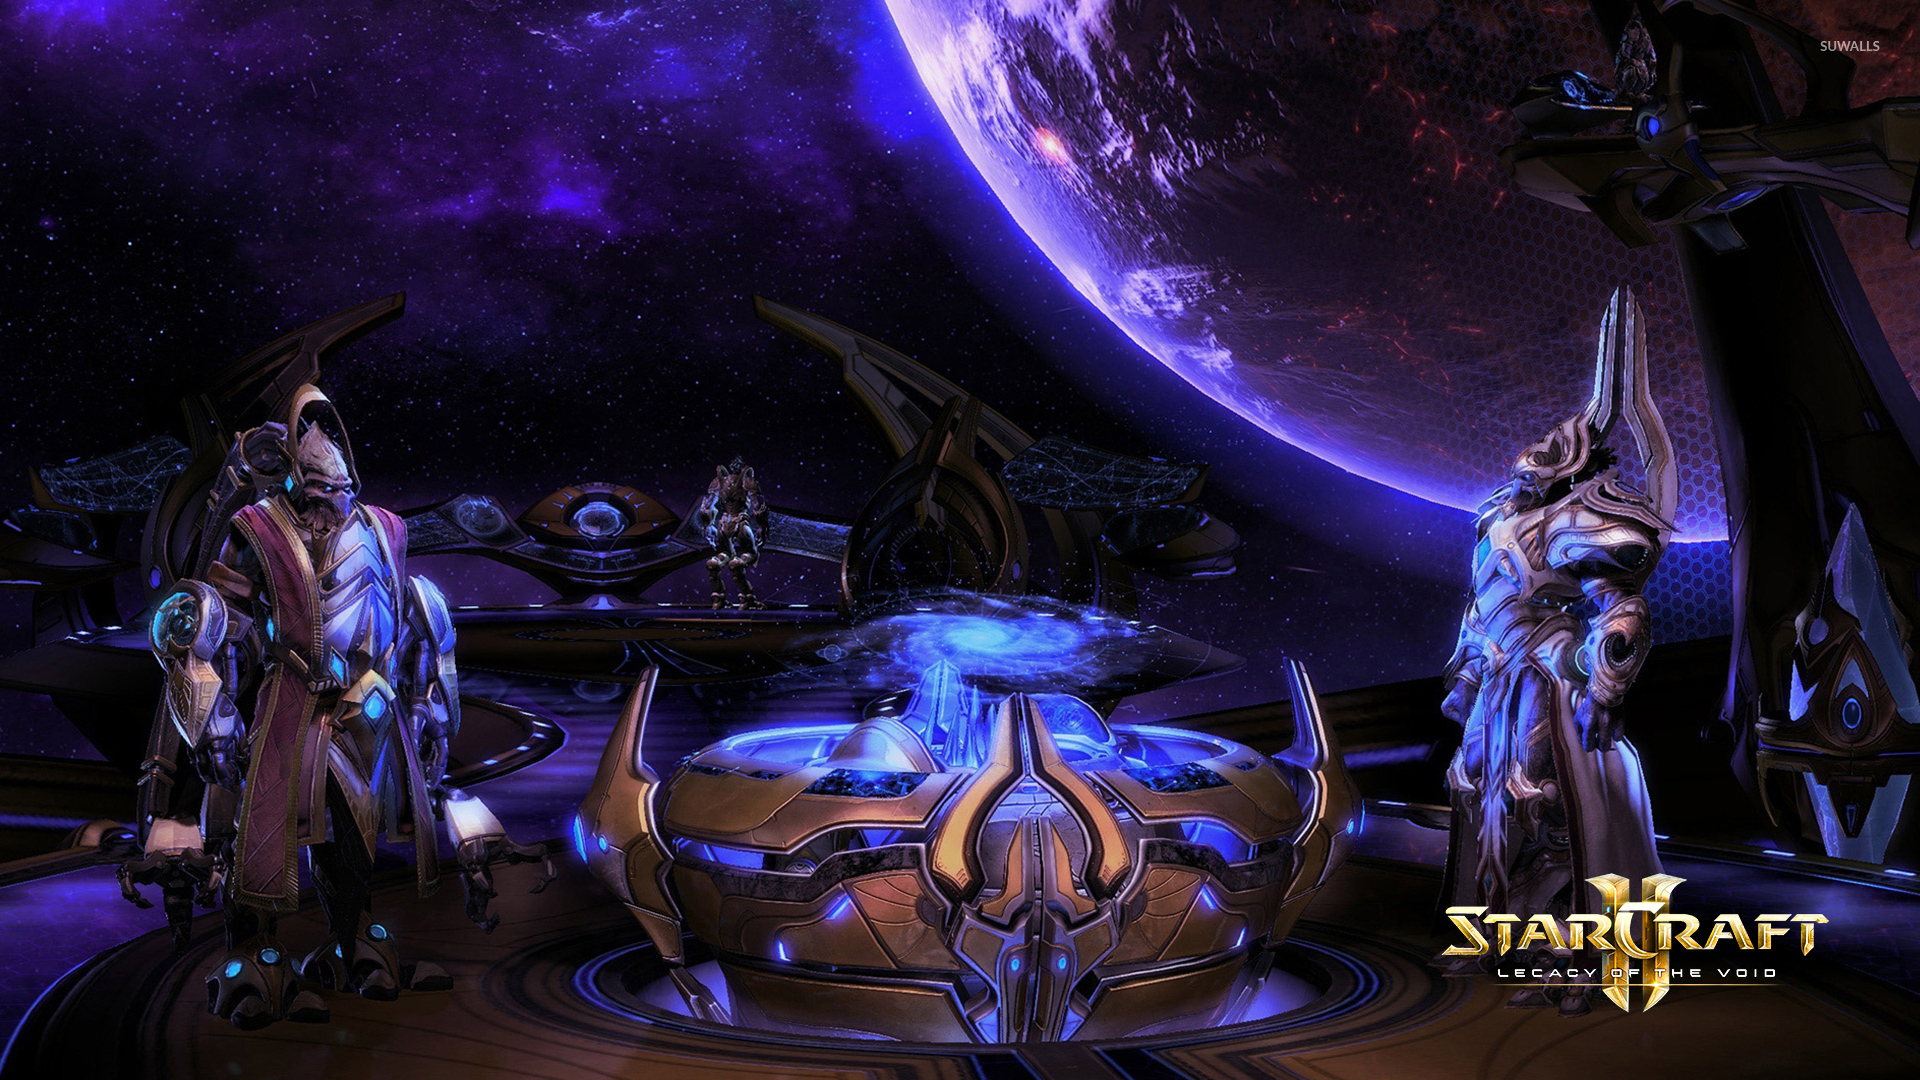 Artanis And Karax In Starcraft Ii Legacy Of The Void Wallpaper